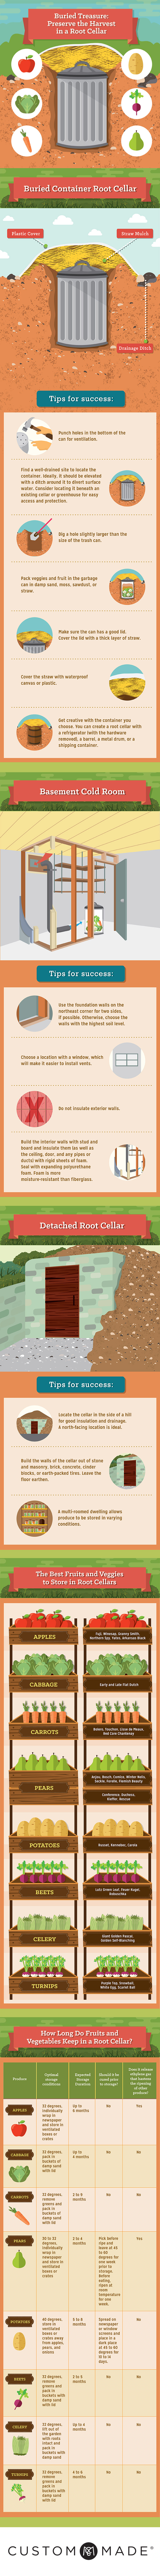 Preserve the Harvest in a Root Cellar | ecogreenlove